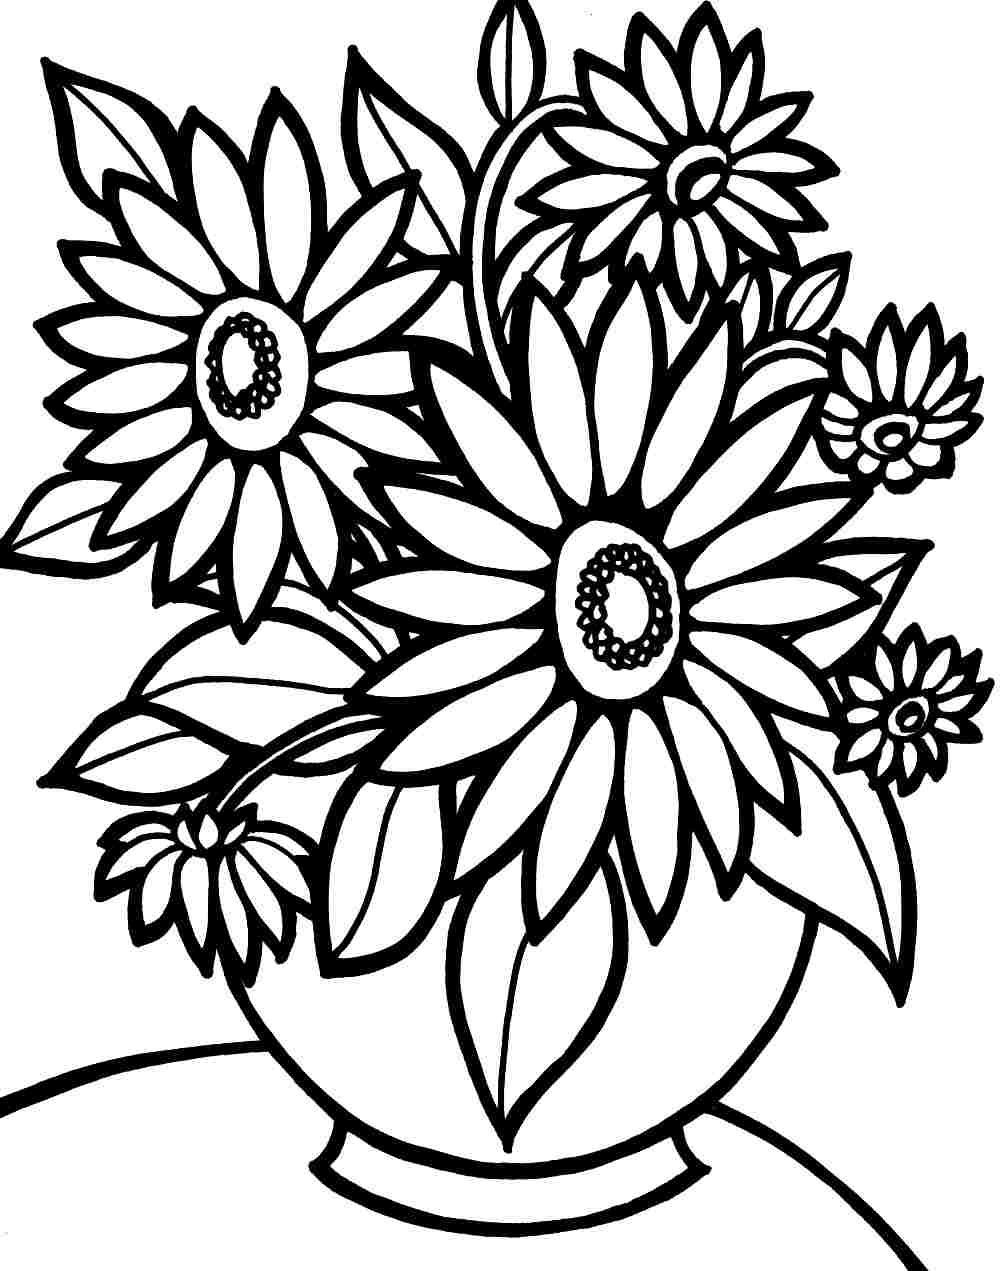 Colouring Pages Bouquet Flowers Printable Free For Kids Free Printable Flower Color Easy Coloring Pages Printable Flower Coloring Pages Flower Coloring Sheets